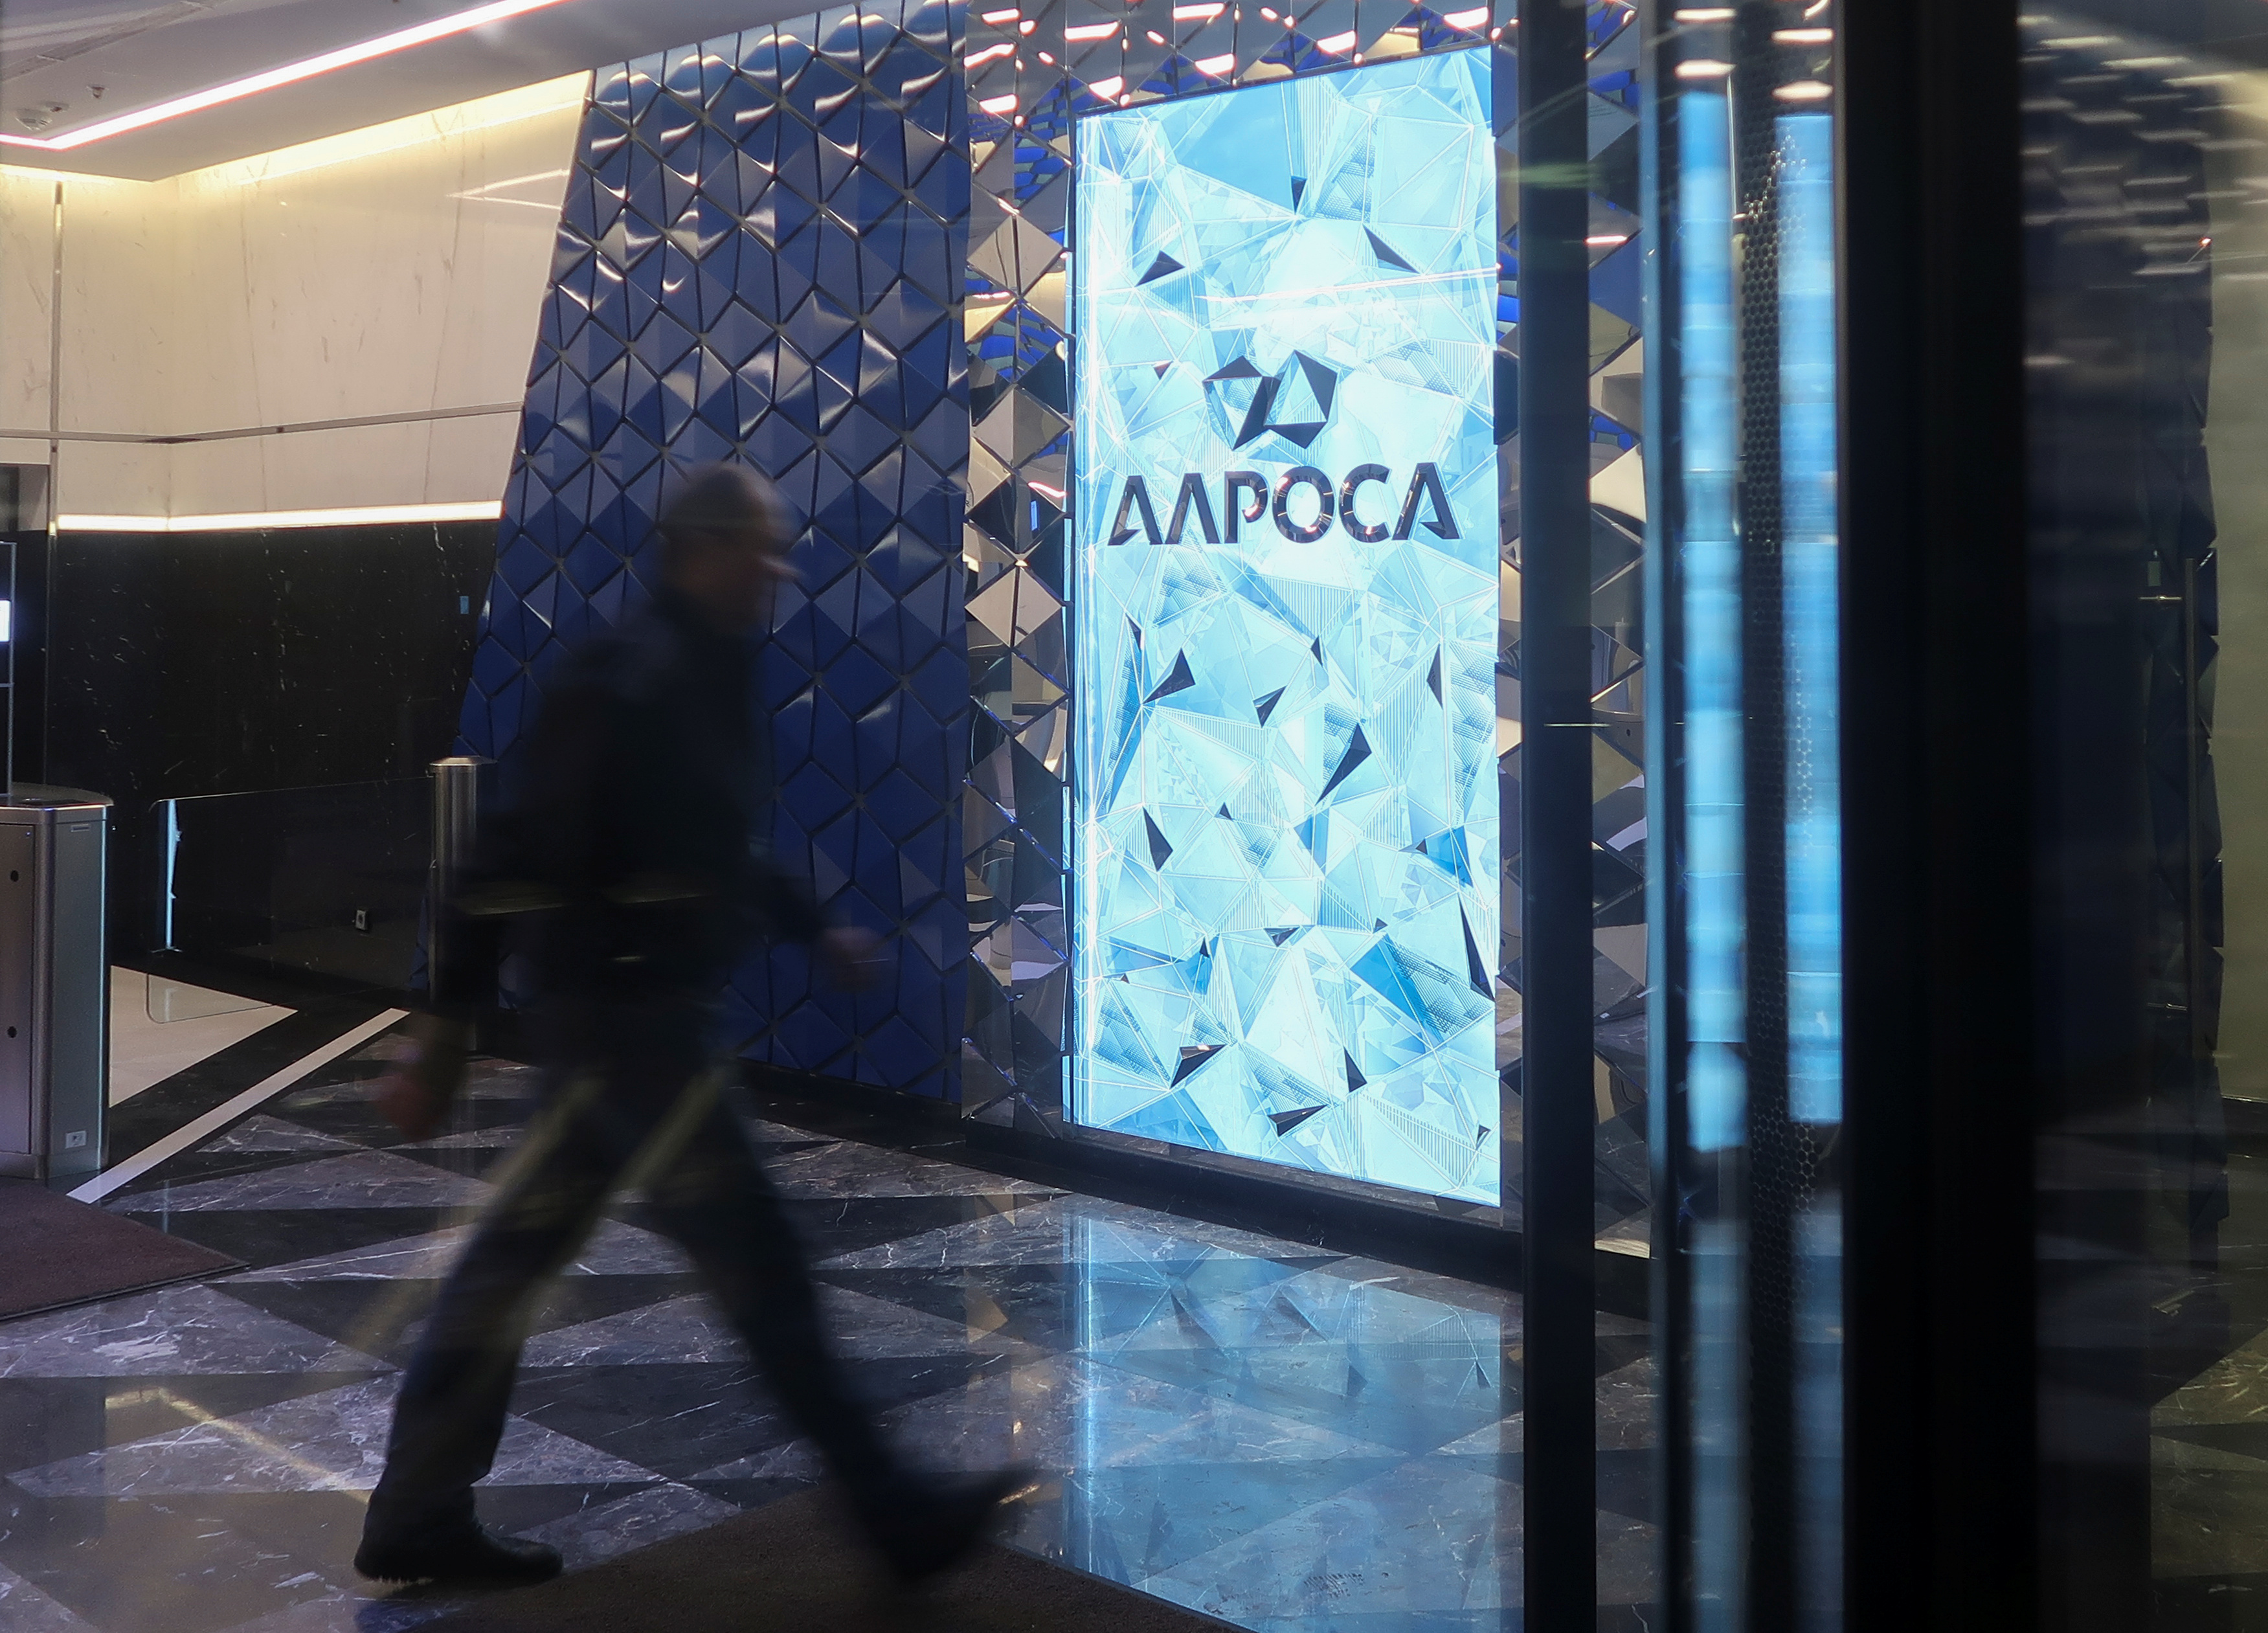 FILE - A man walks past the logo of Russia's diamond producer Alrosa at the entrance of the company's headquarters in Moscow, Russia, Jan. 26, 2018.